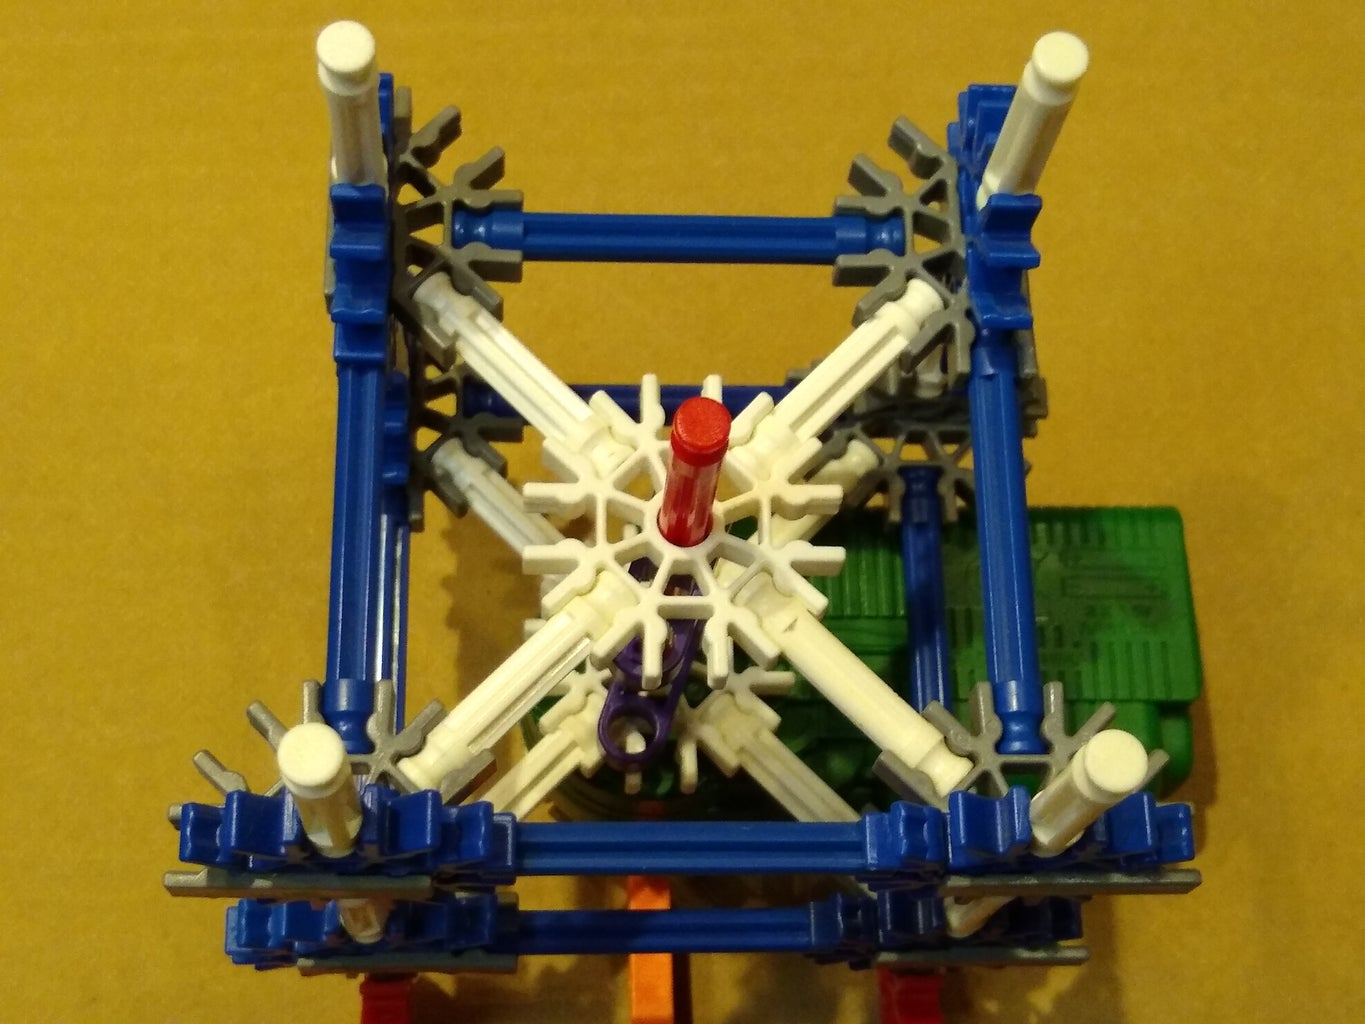 Build and Install the Shaft Support